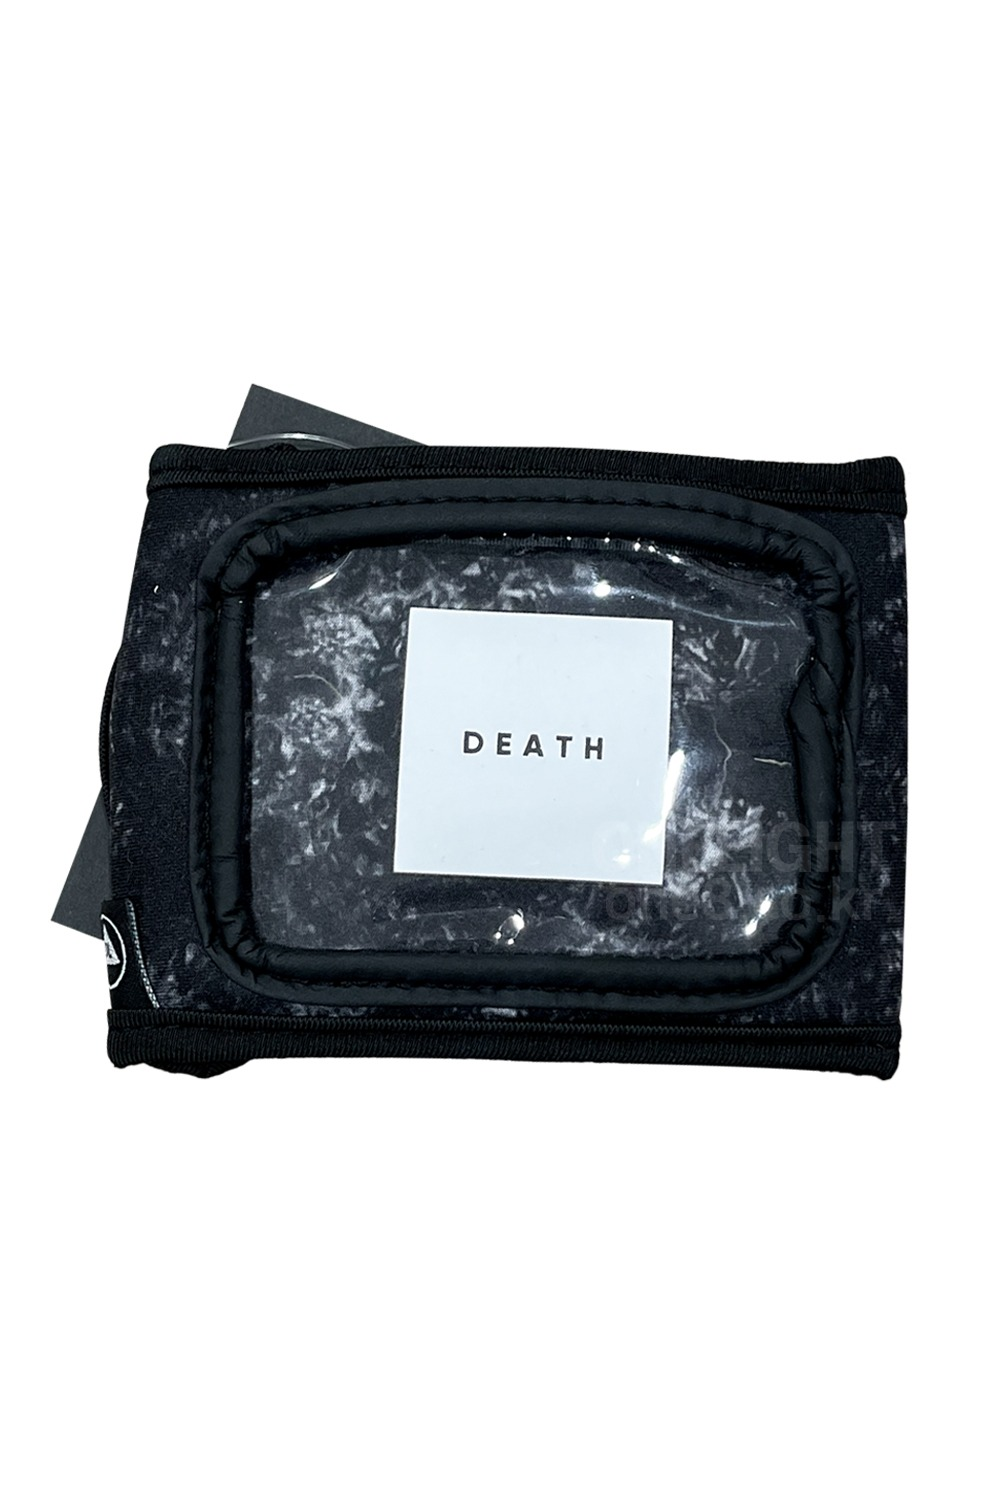 2021 데스라벨 글러브 패스 2021 DEATH LABEL_GLOVE PASS_TIEDYE BLACK_DGDL006TI